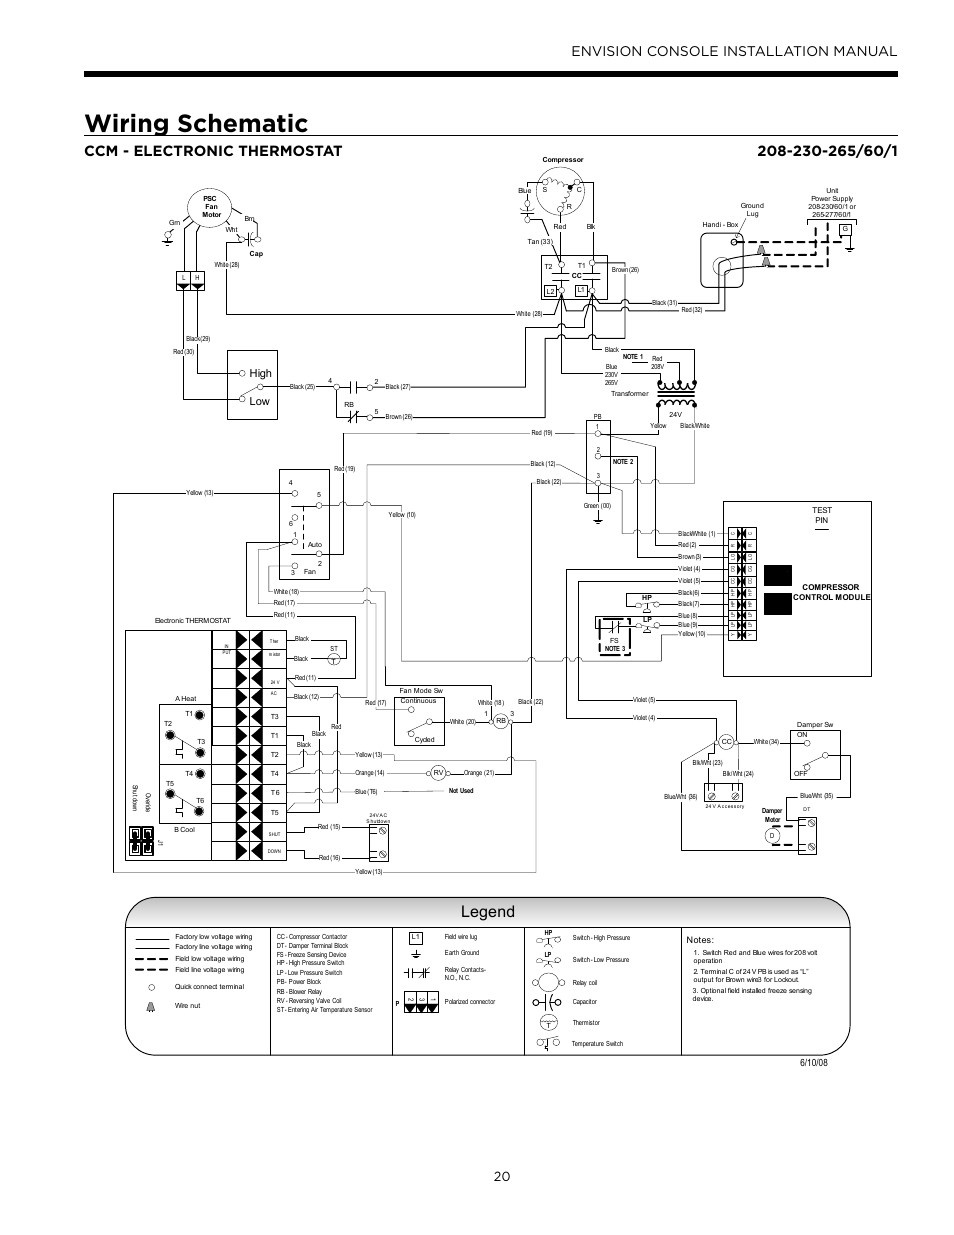 medium resolution of wiring schematic legend envision console installation manual water furnace geothermal wiring diagram water furnace wiring